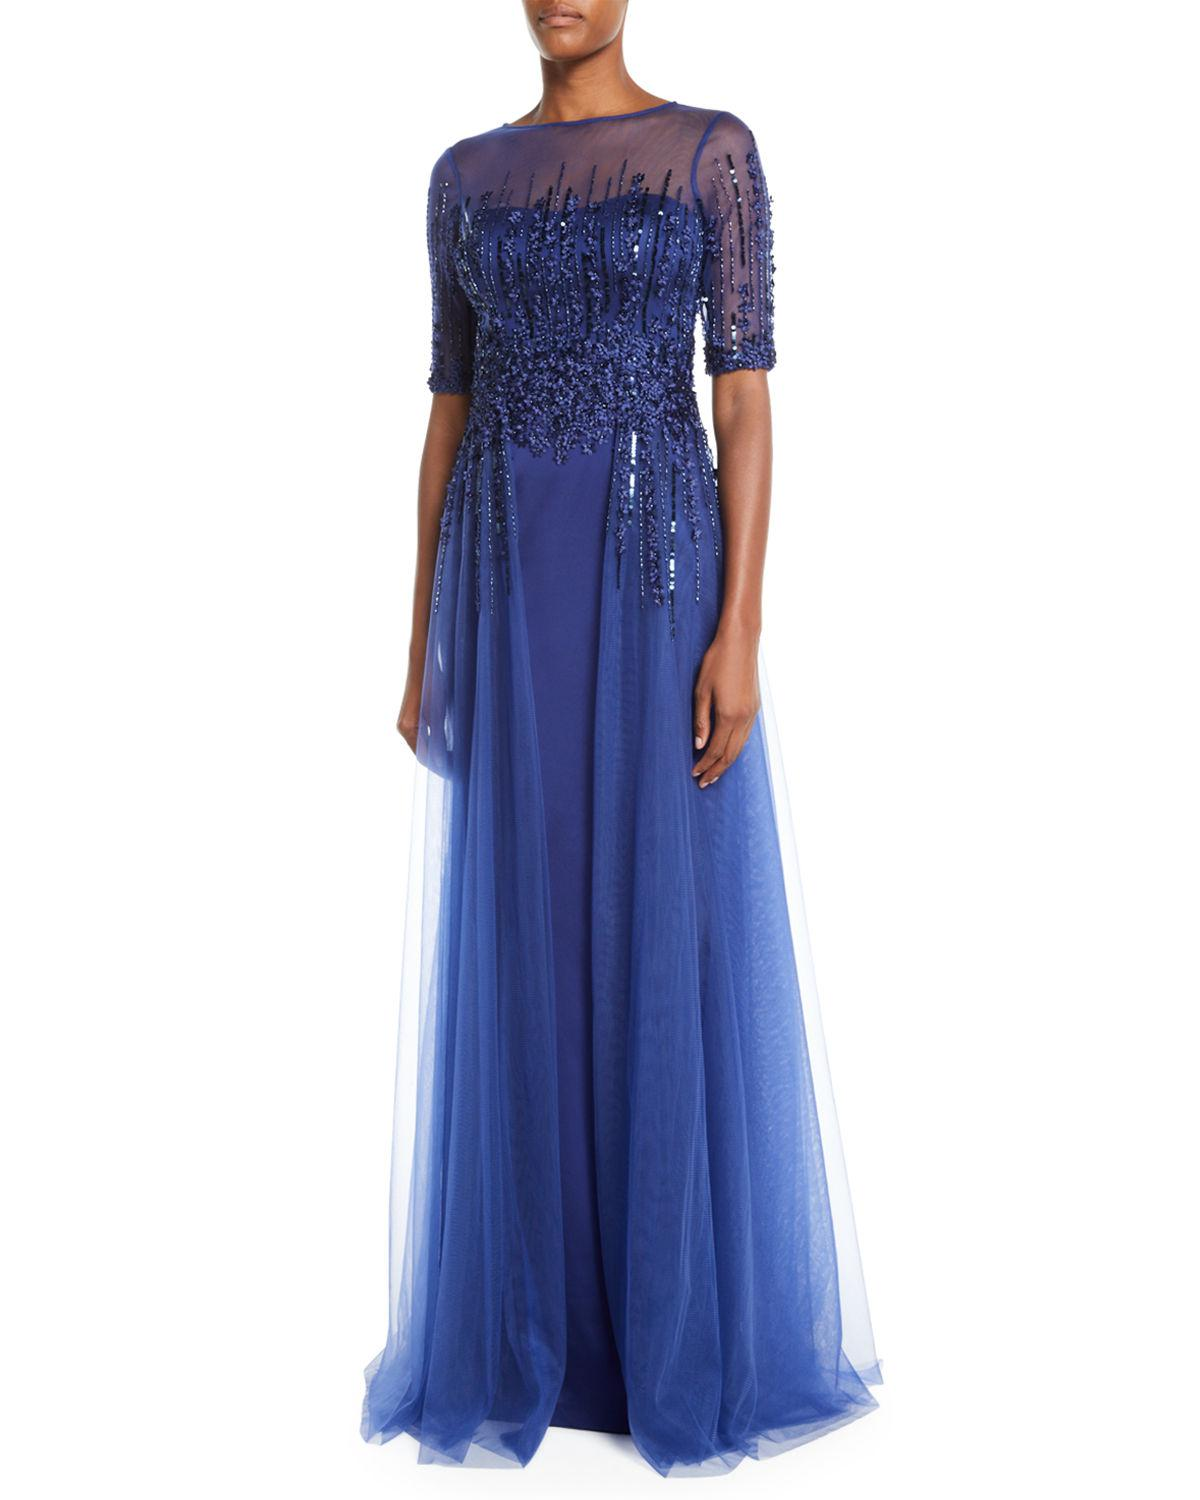 6ae4d554e99c Lyst - Teri Jon Embellished Satin Illusion Trumpet Gown in Blue